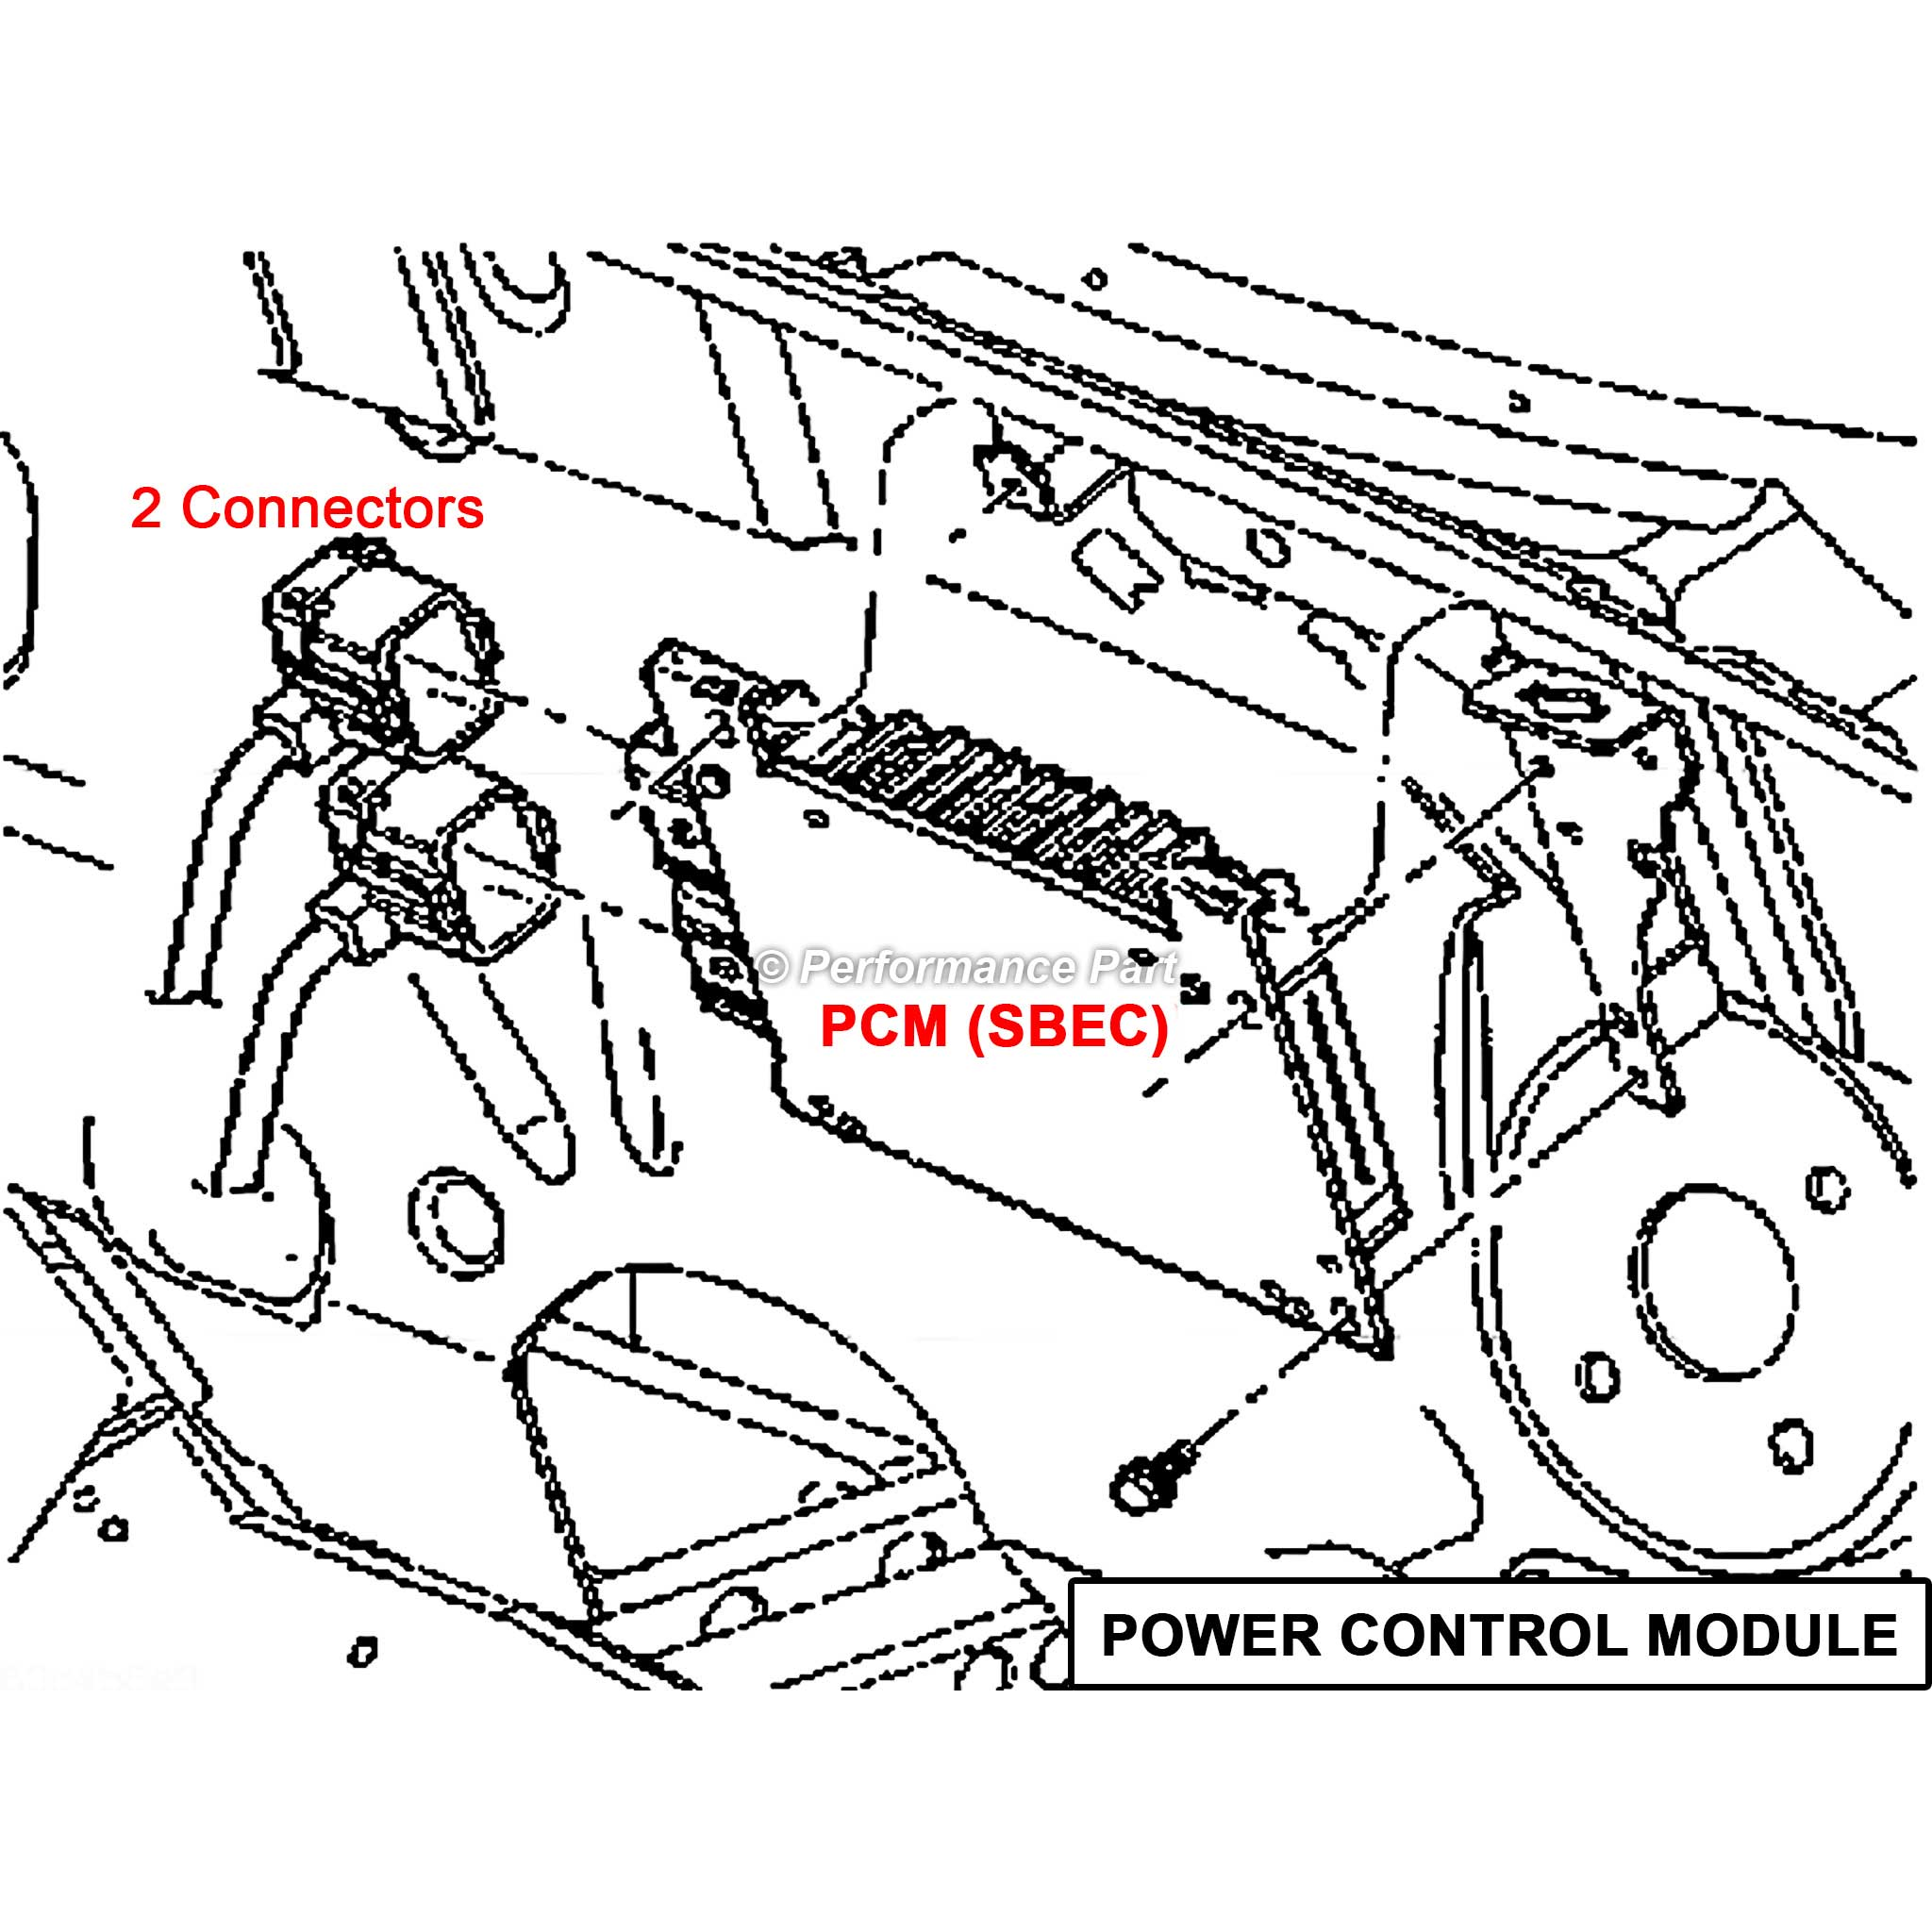 1999 ford mustang gt radio wiring diagram car aircon thermostat 2007 grand prix database